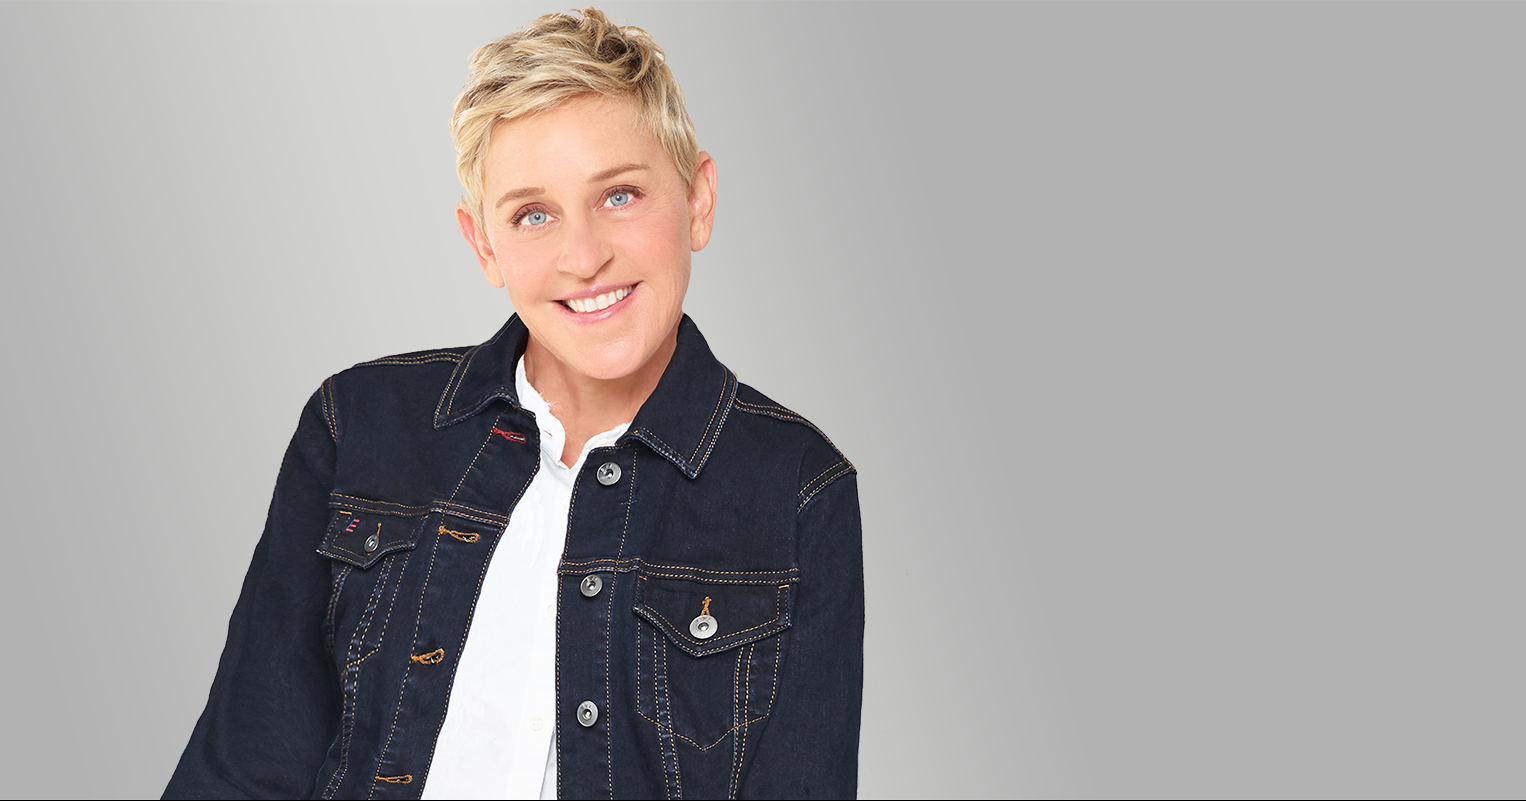 Ellen DeGeneres, Comedian, Television Host, Actress, Writer, and Producer